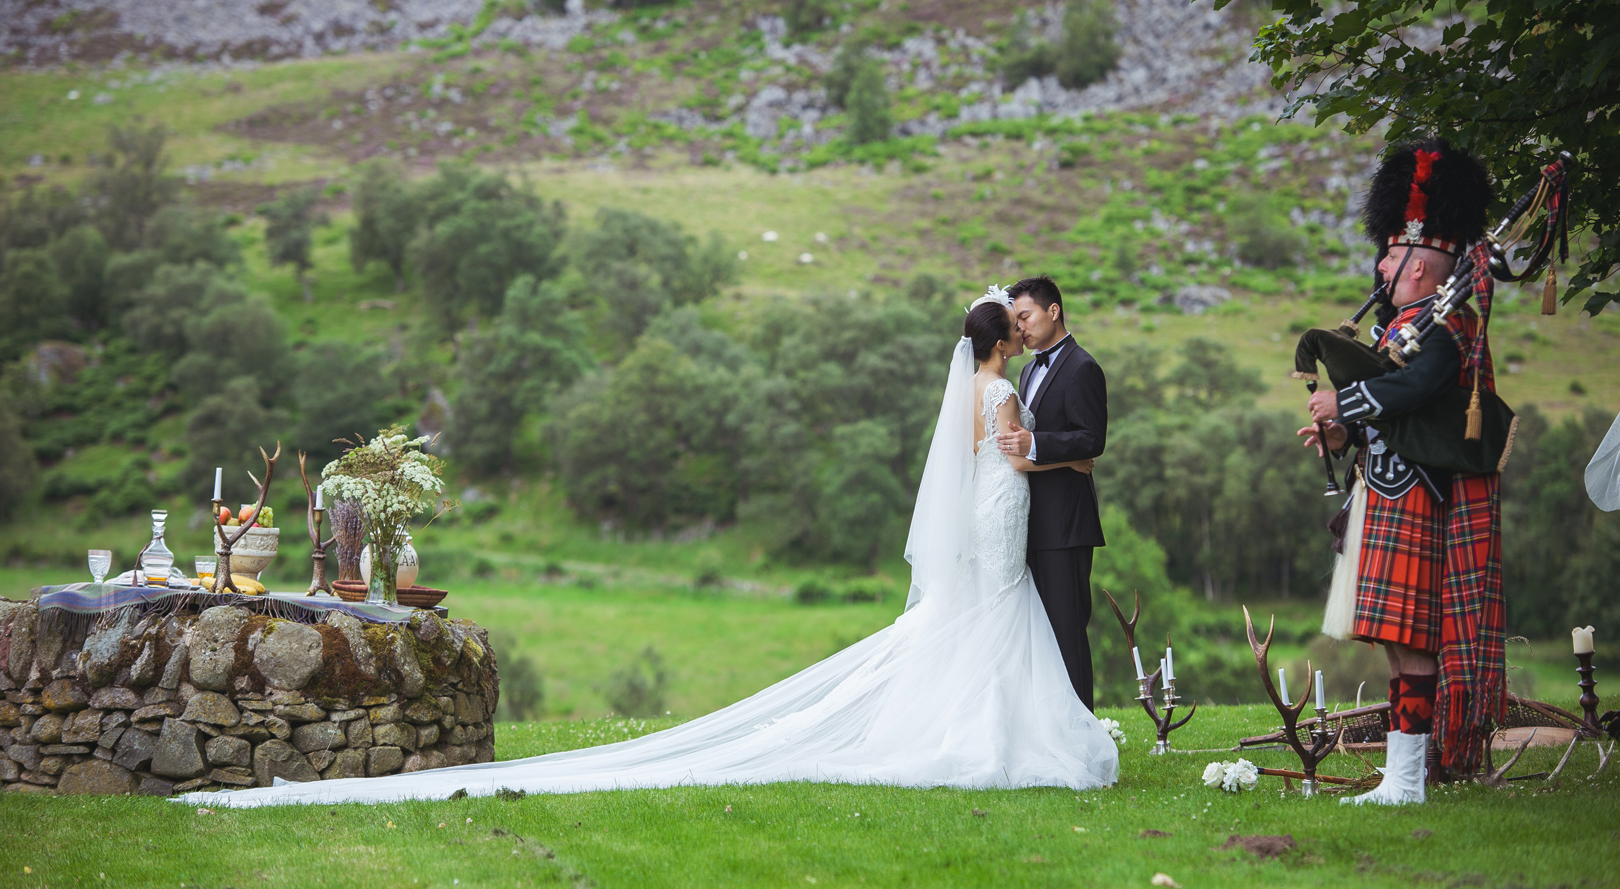 Weddings at Forter Castle